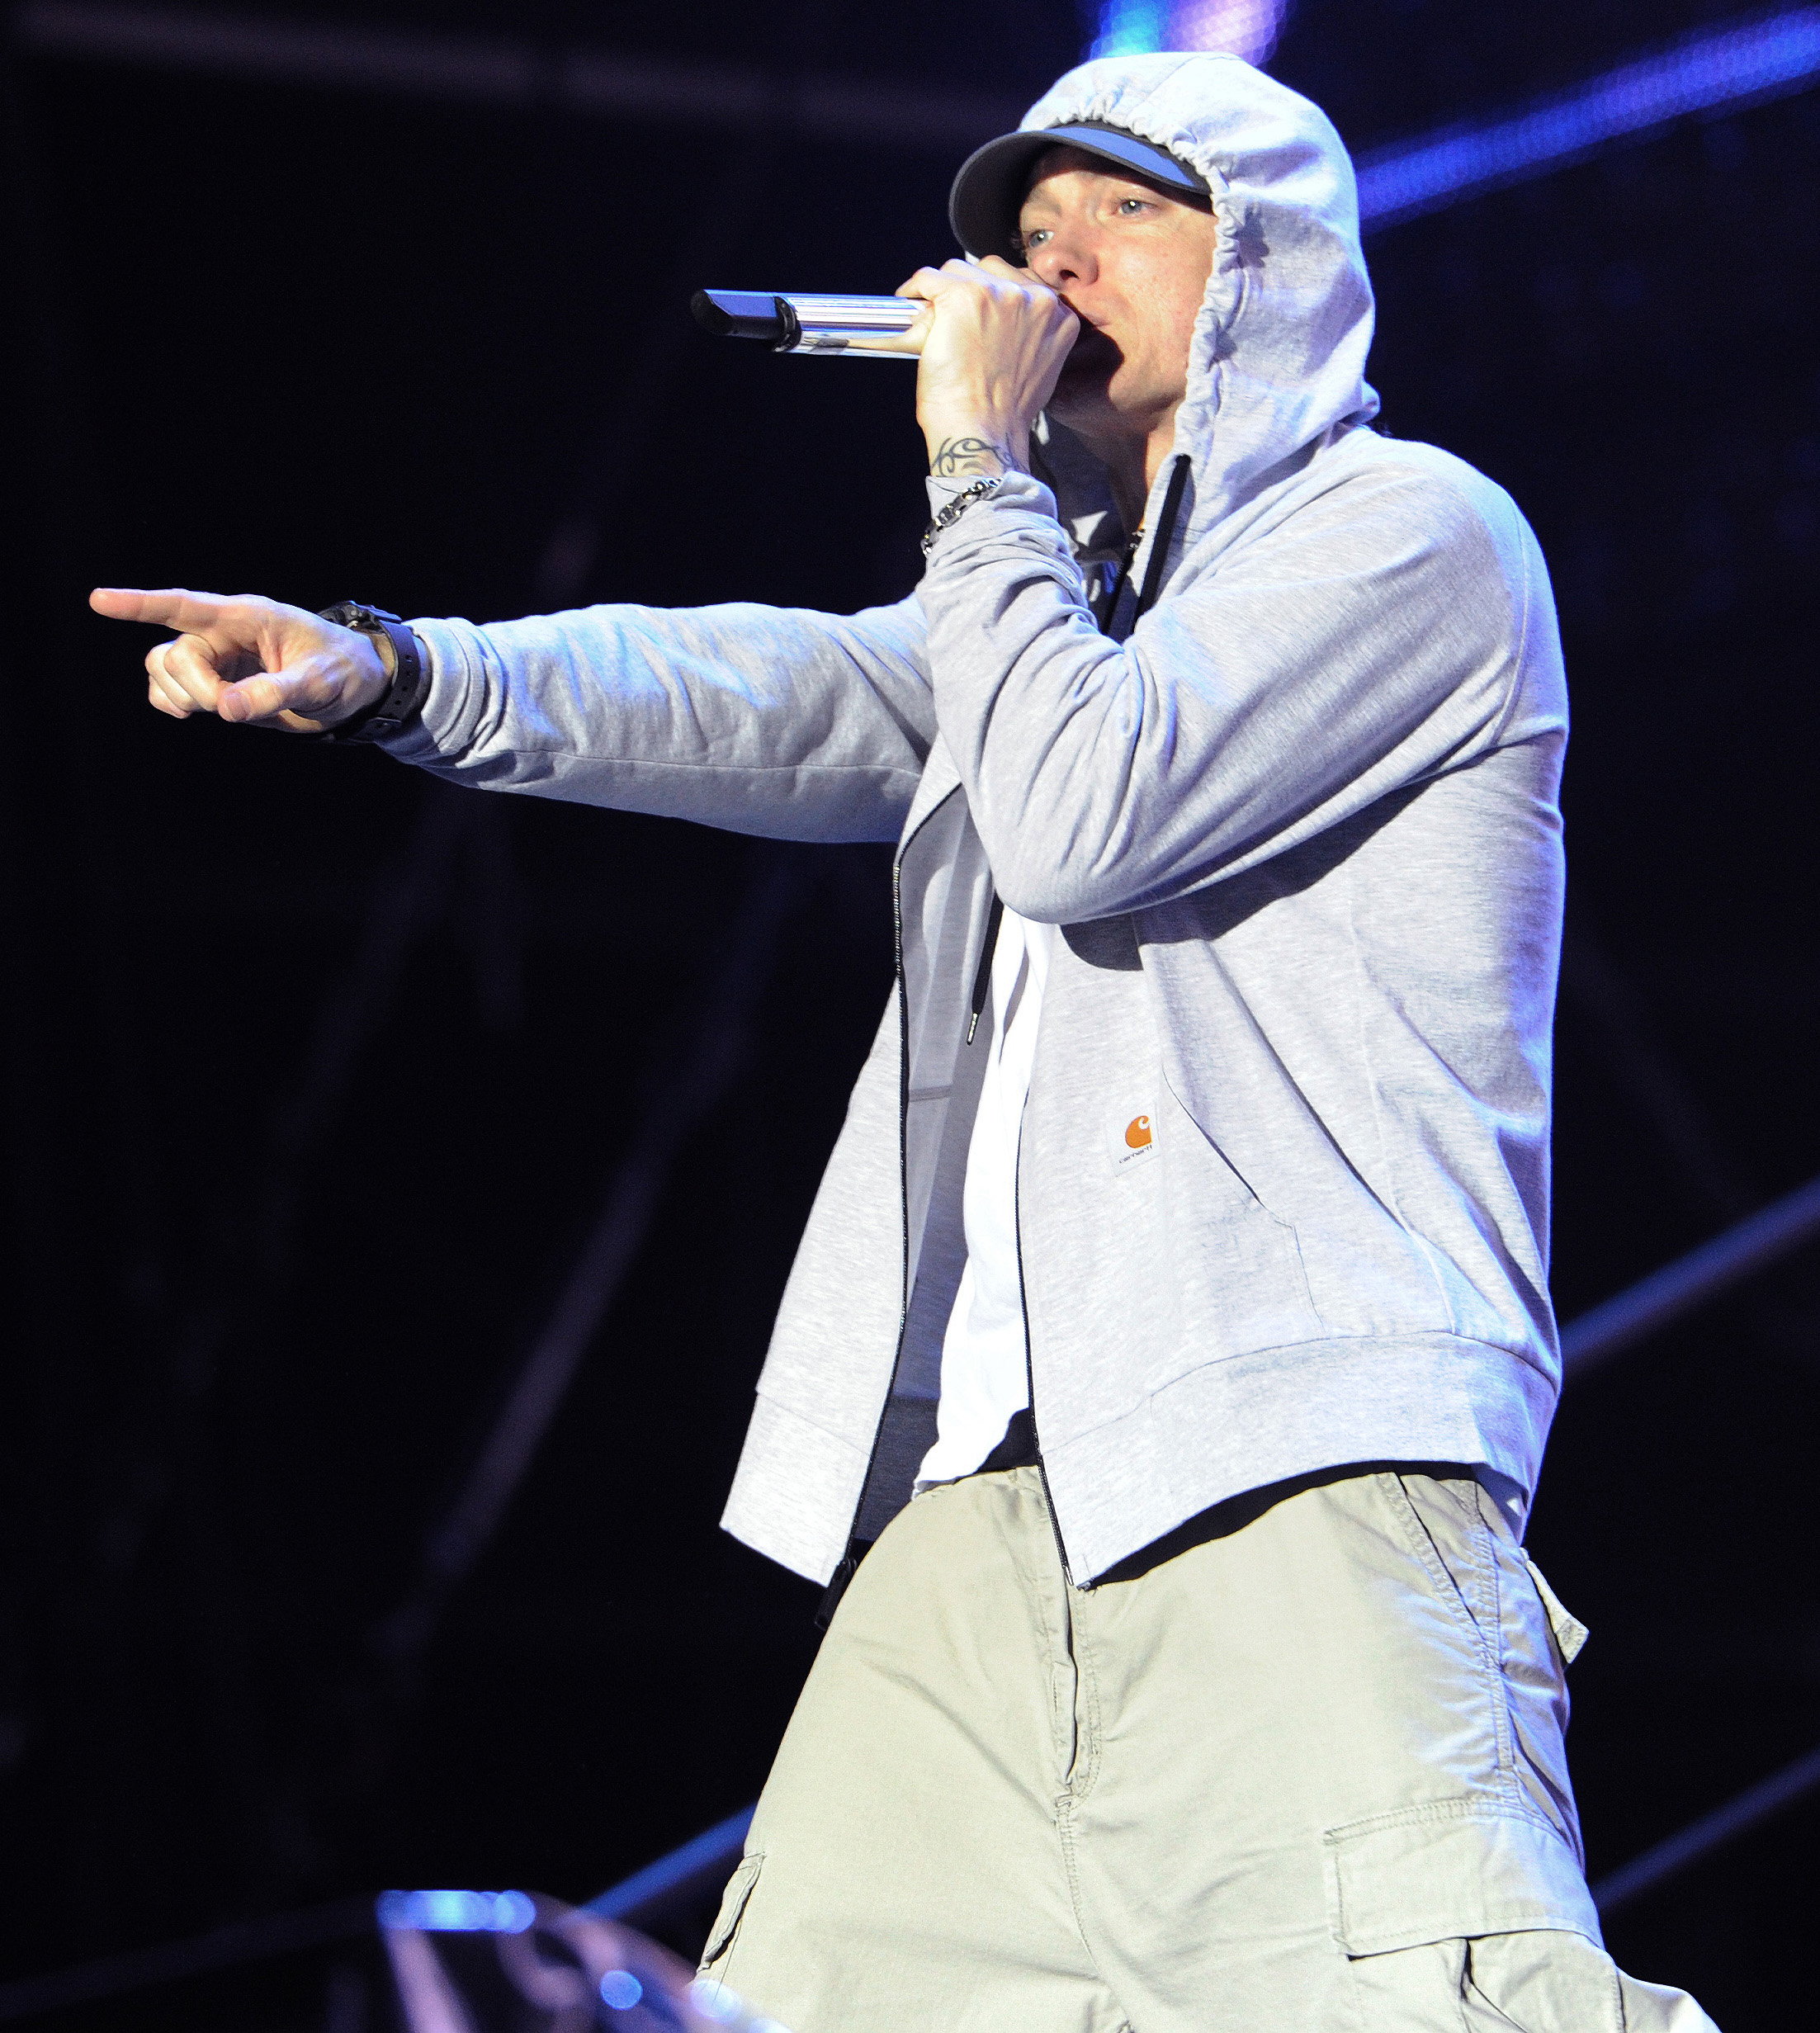 This marks the fifth festival headlining gig Eminem will have on his calendar this summer:{&amp;nbsp;} Firefly, Bonnaroo, The Governors Ball, Coachella and Boston Calling (Image: WENN.com)<p></p>